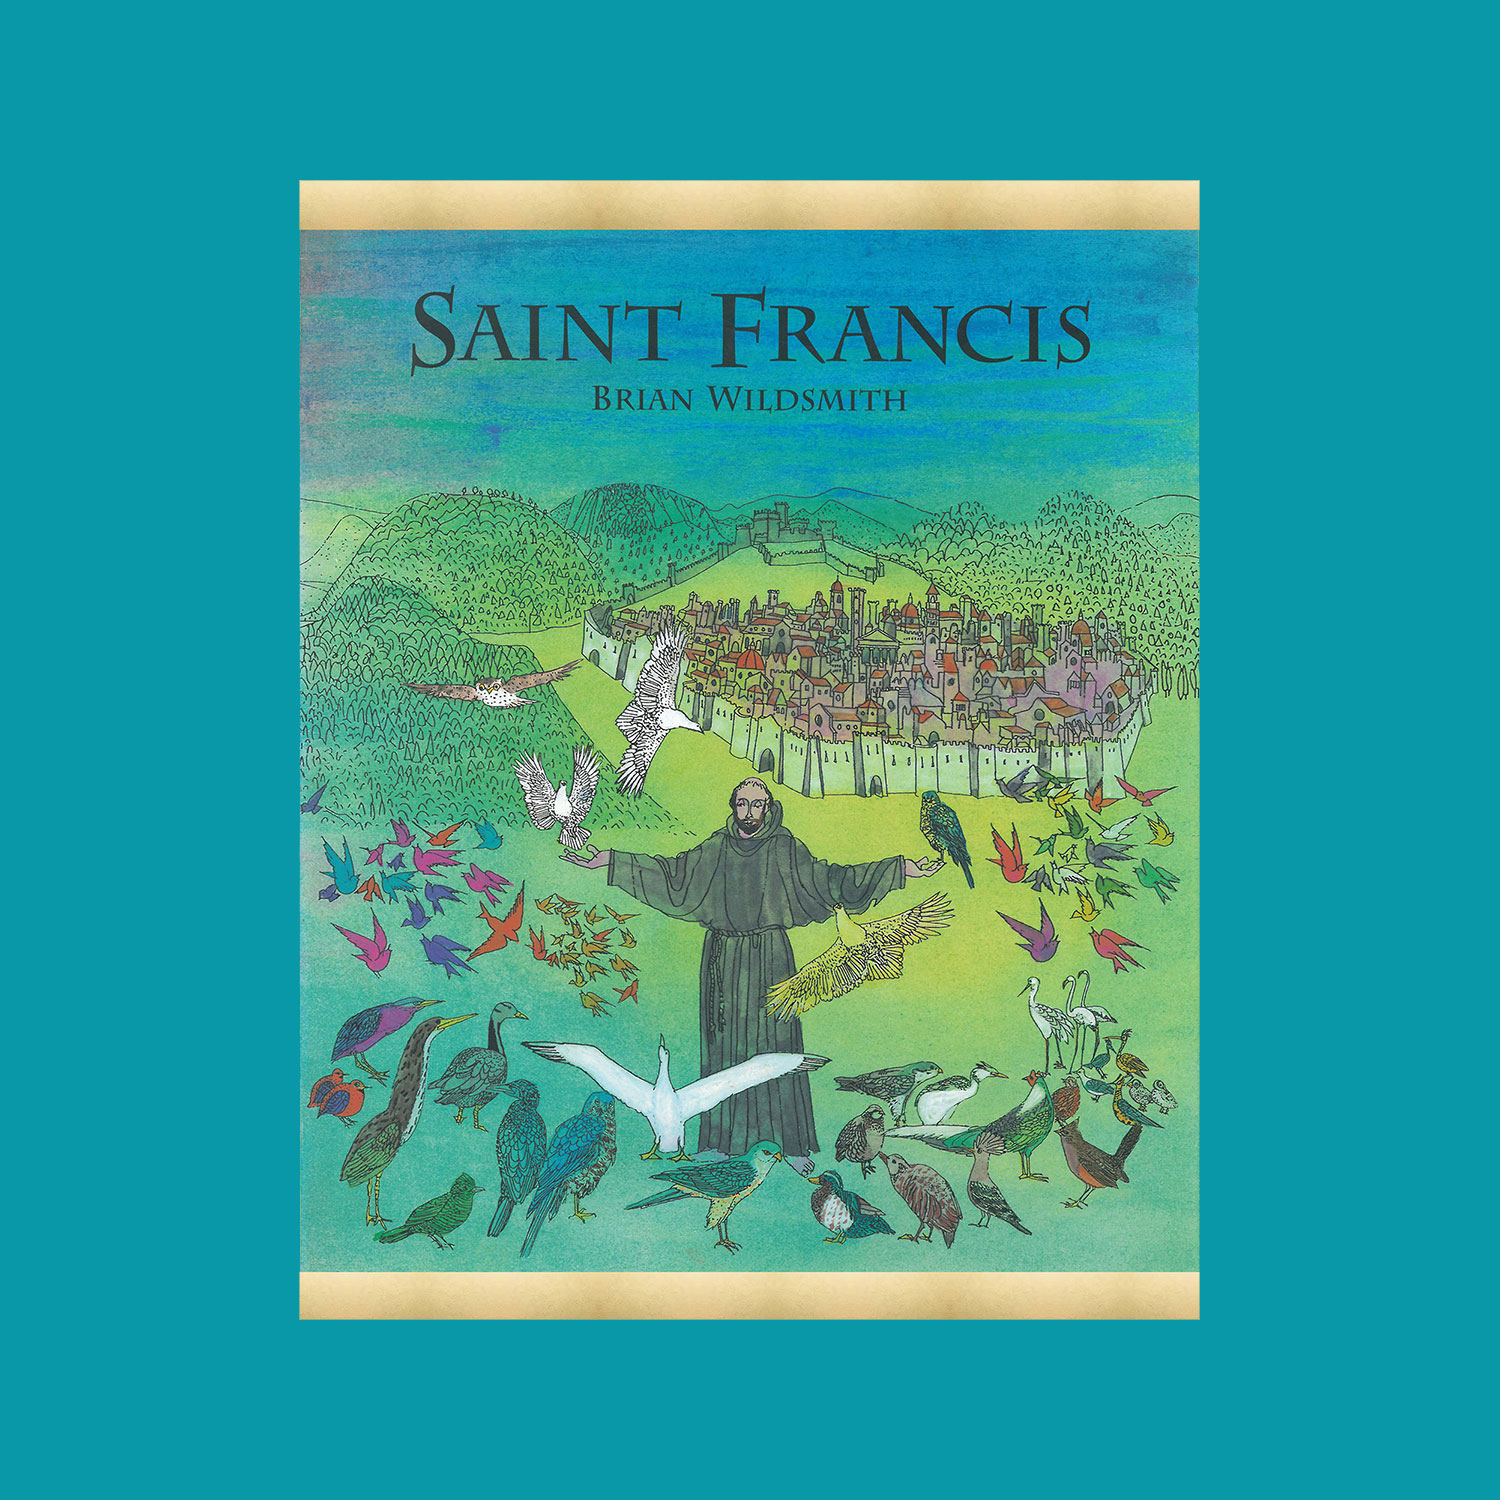 """SAINT FRANCIS - 1995""""The is the story of the life of 12th century Christian monk who renounced an affluent lifestyle and took to the streets, restoring ruined churches gave up his wealth and lived and worked among the poor. He loved all God's creatures and called them his sisters and brothers. His name was Francis.""""""""…a spectacular book in gorgeous colours lavishly laced with gold.""""Church Times"""